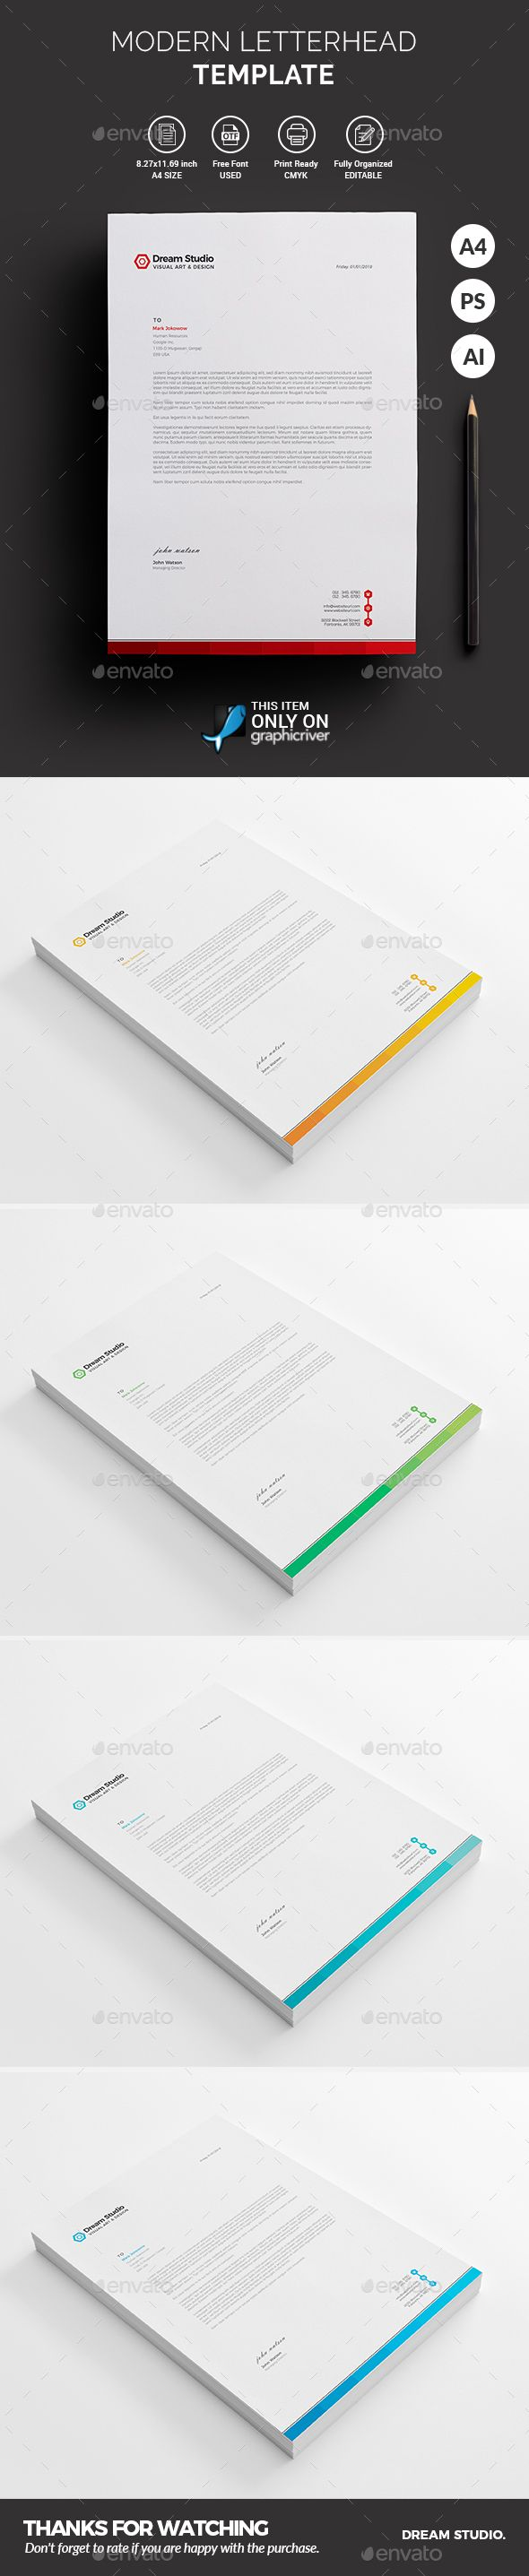 Letterhead fonts letterhead template and stationery printing letterhead spiritdancerdesigns Choice Image